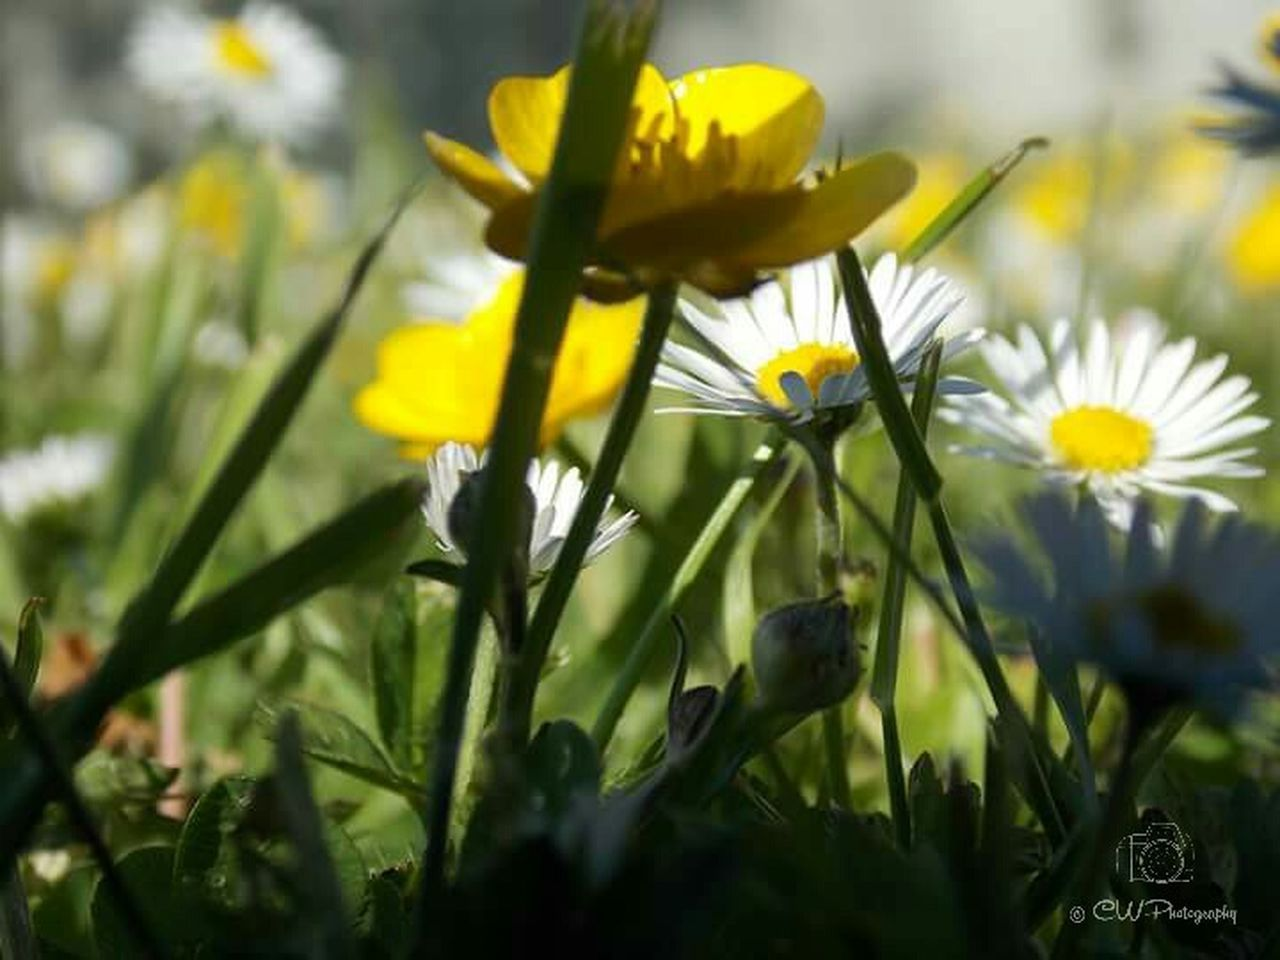 flower, nature, growth, plant, yellow, petal, fragility, freshness, beauty in nature, no people, flower head, close-up, outdoors, day, grass